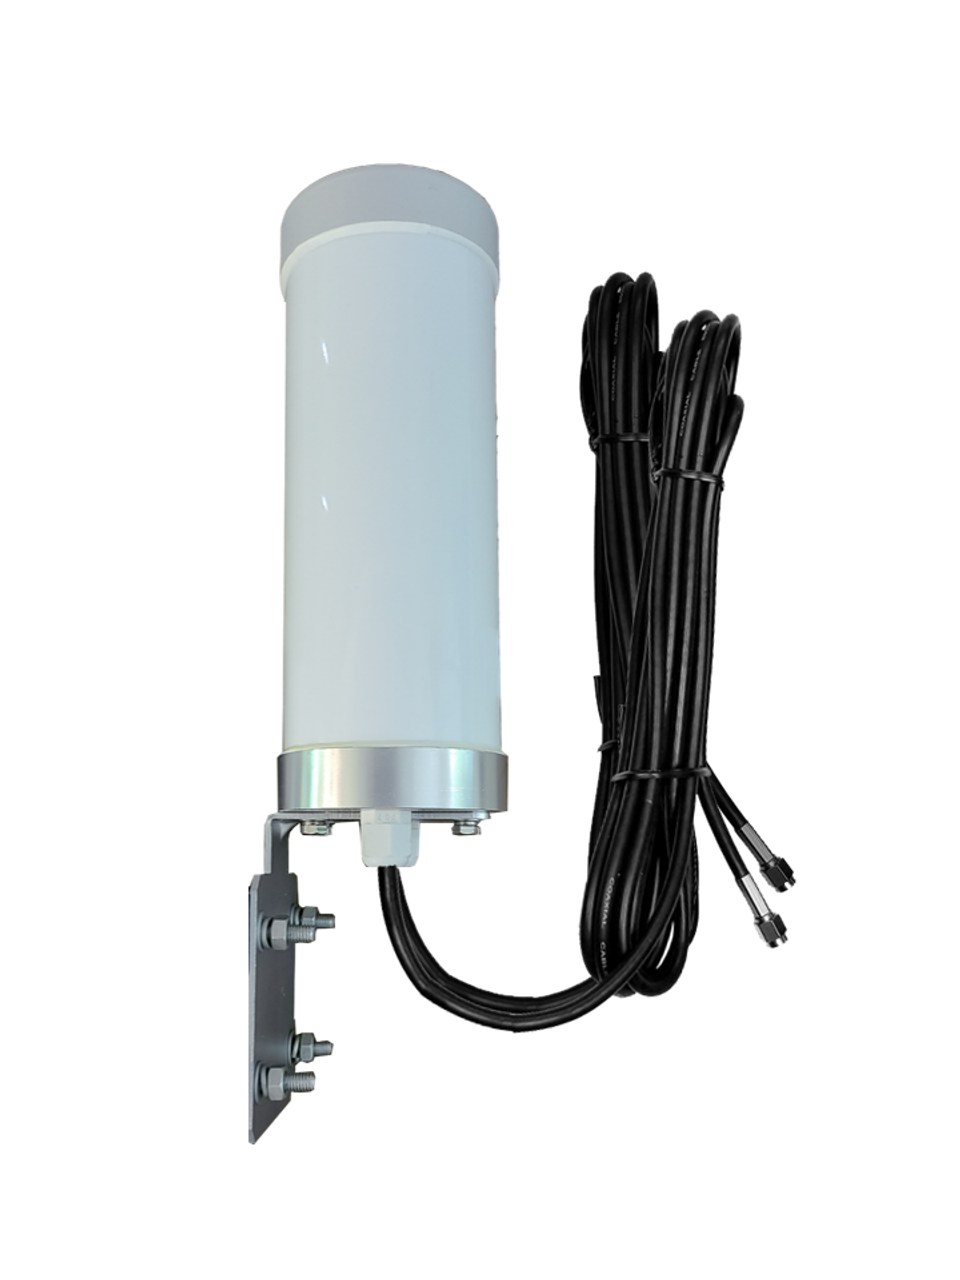 M29T T-Mobile (Band 71 Optimized) MIMO 2 x Cellular 4G LTE CBRS 5G M2M IoT Bracket Mount Antenna w/2 x 16ft Coax Cables - SMA Male